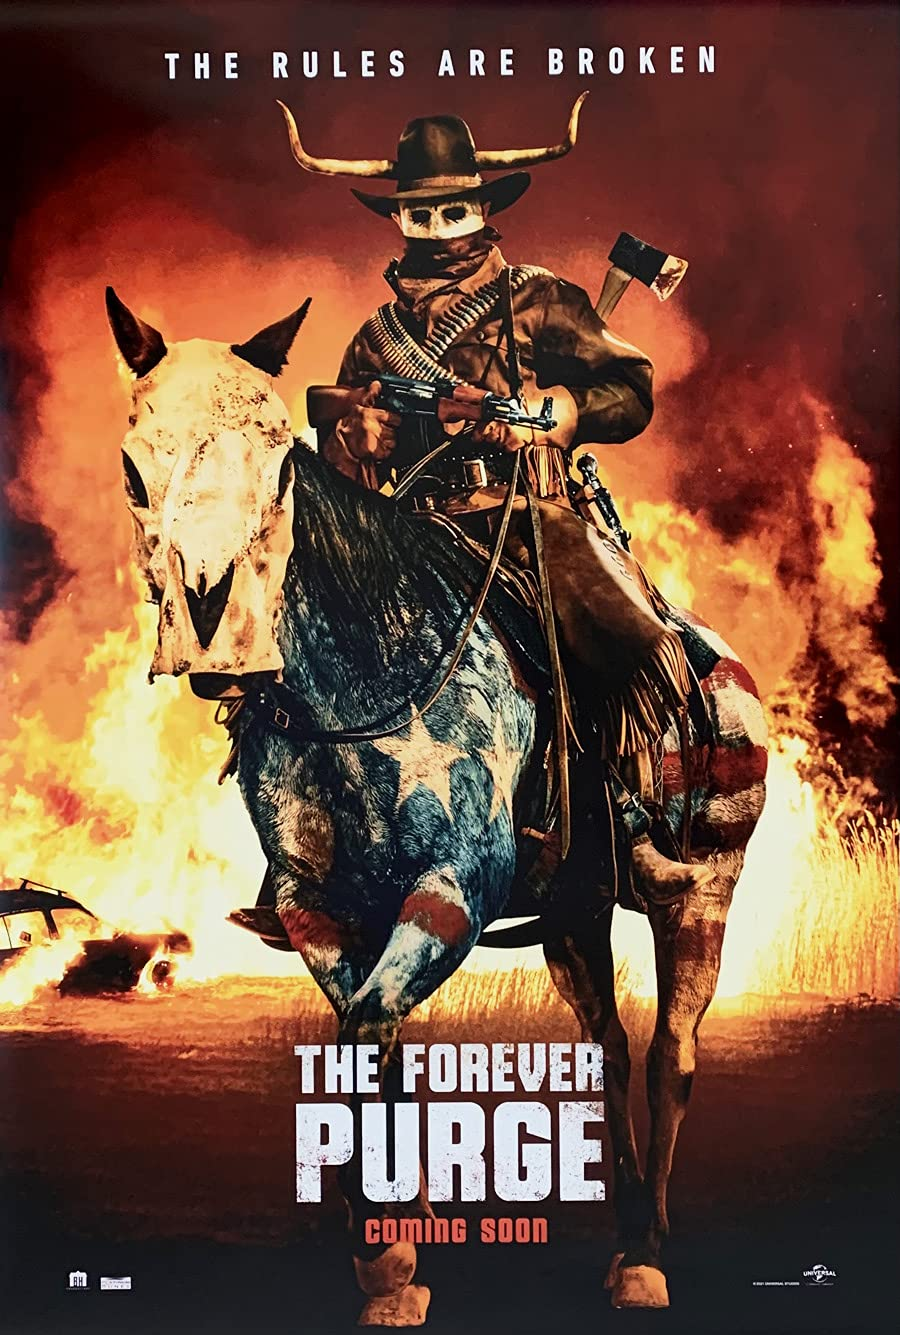 Download The Forever Purge (2021) Telugu Dubbed (Voice Over) & English [Dual Audio] WebRip 720p [1XBET] Full Movie Online On 1xcinema.com